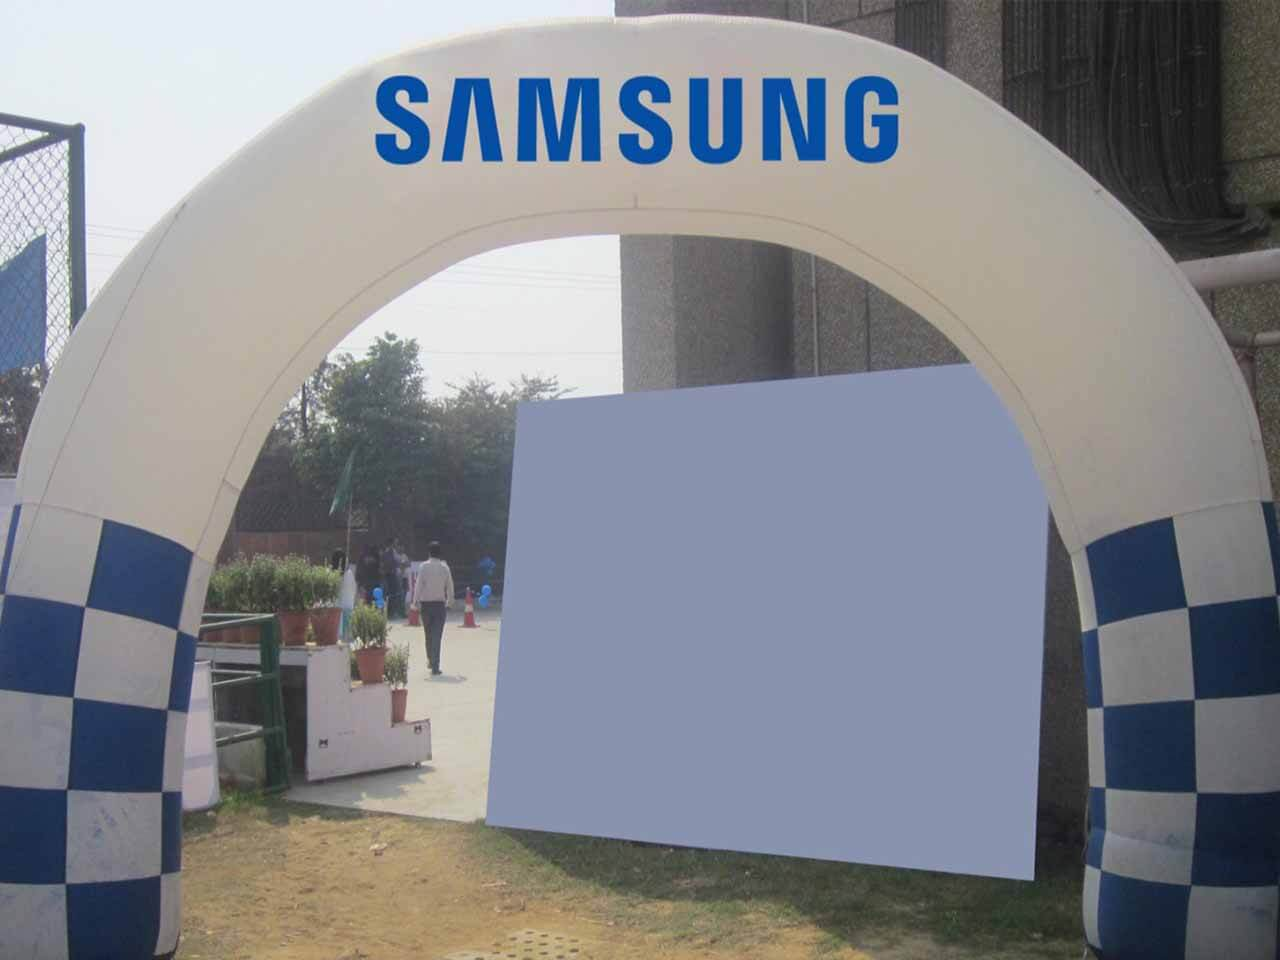 inflatable-tent-samsung